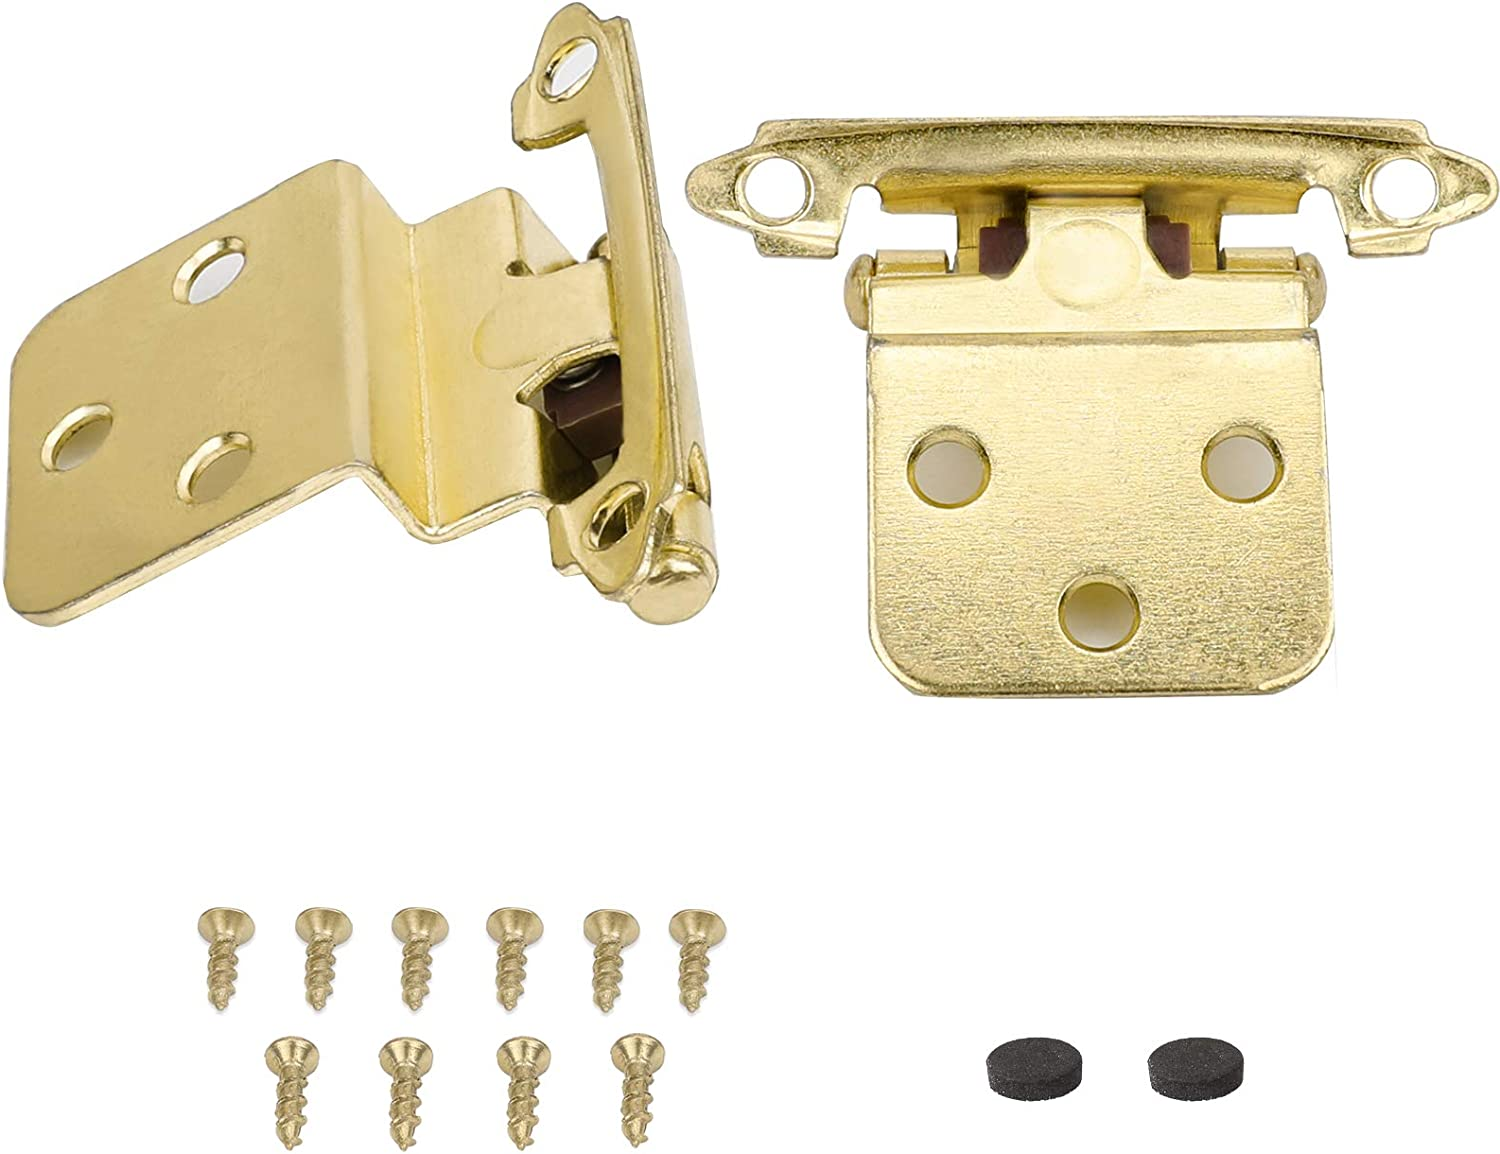 Goldenwarm 3 8 Self Closing Kitchen Cabinet Hinges Brass Cabinet Hardware Hinges Inset Sch38bb Cabinet Door Hinges Face Mount Bathroom Cabinet Hinges For Drawer Pairs Of 12 Amazon Com